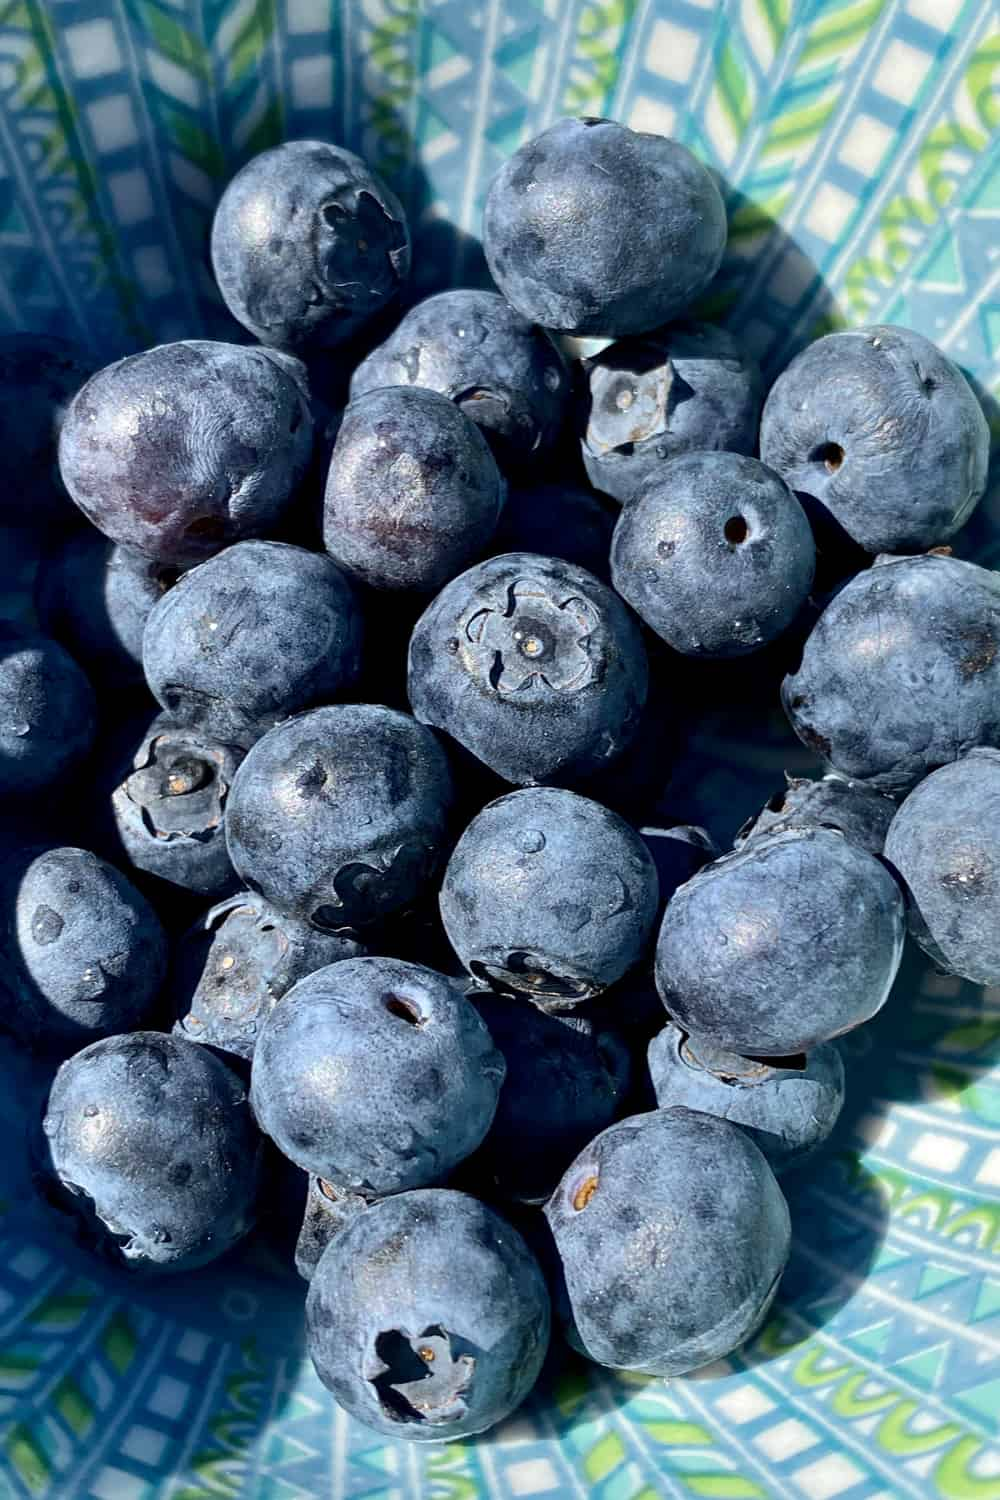 Do Blueberries Go Bad How Long Does it Last